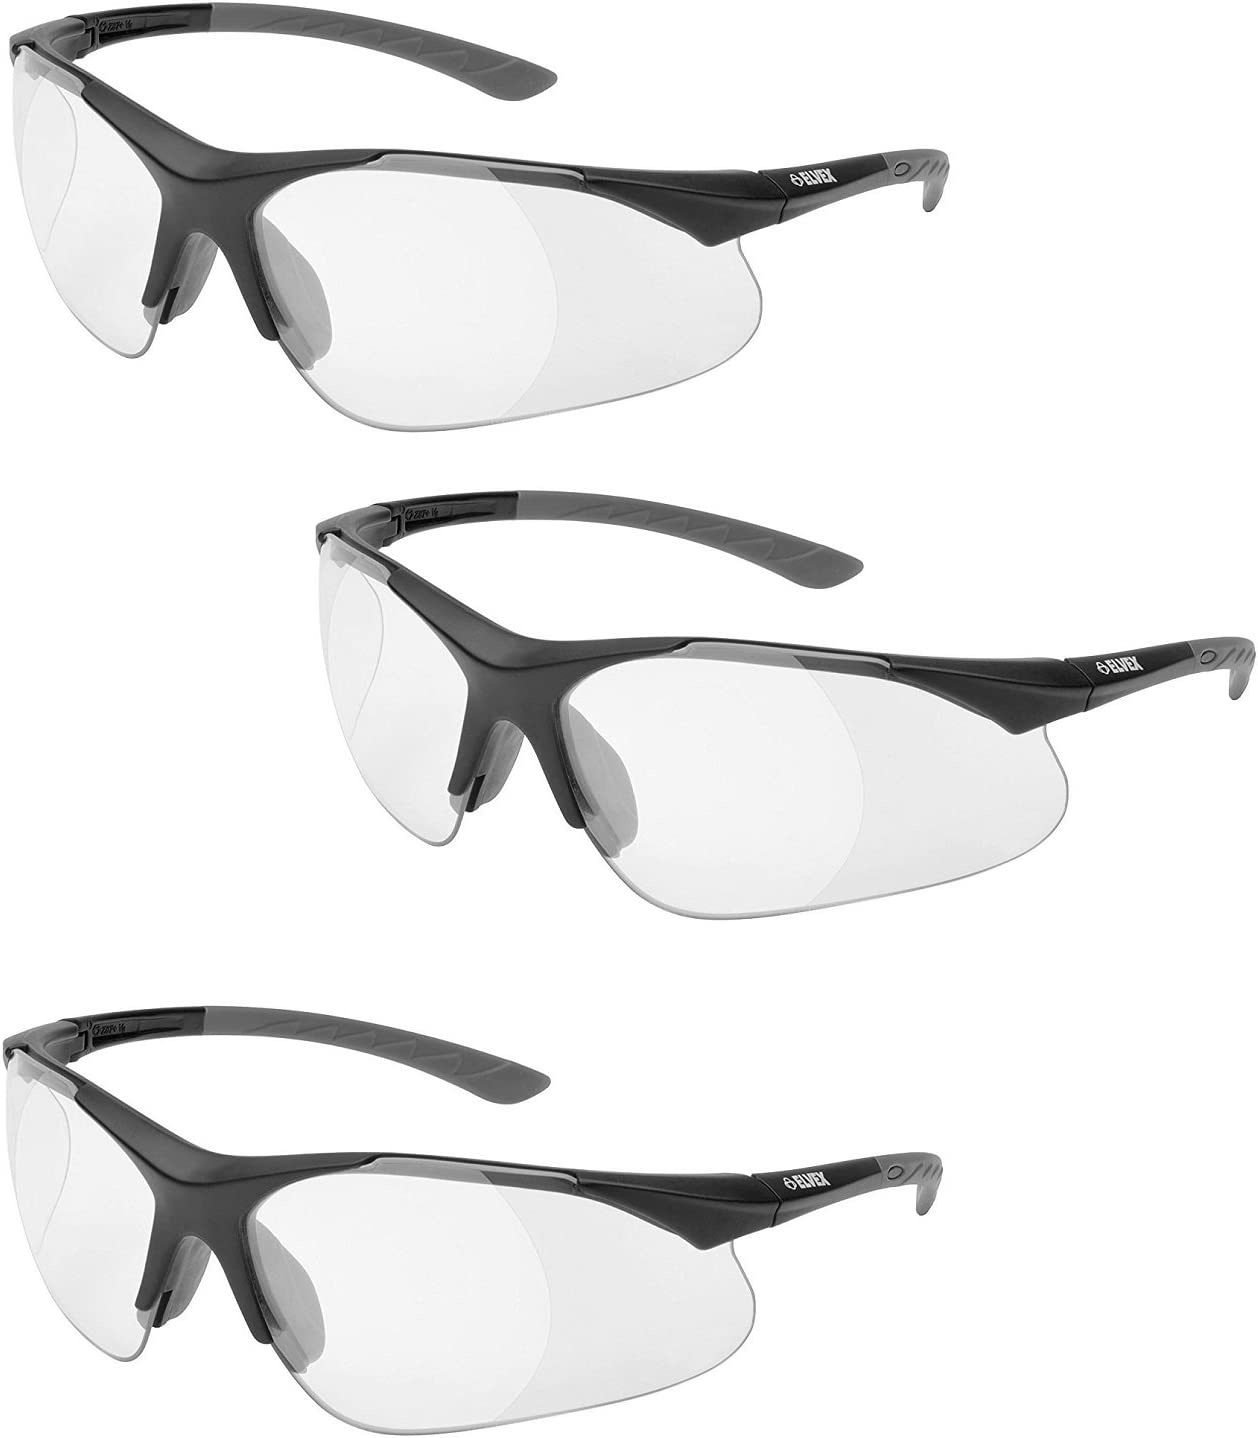 We OFFer at cheap prices Elvex RX-500C-1.5 Full Time sale Lens Magnifier Black Grey Temple Frame